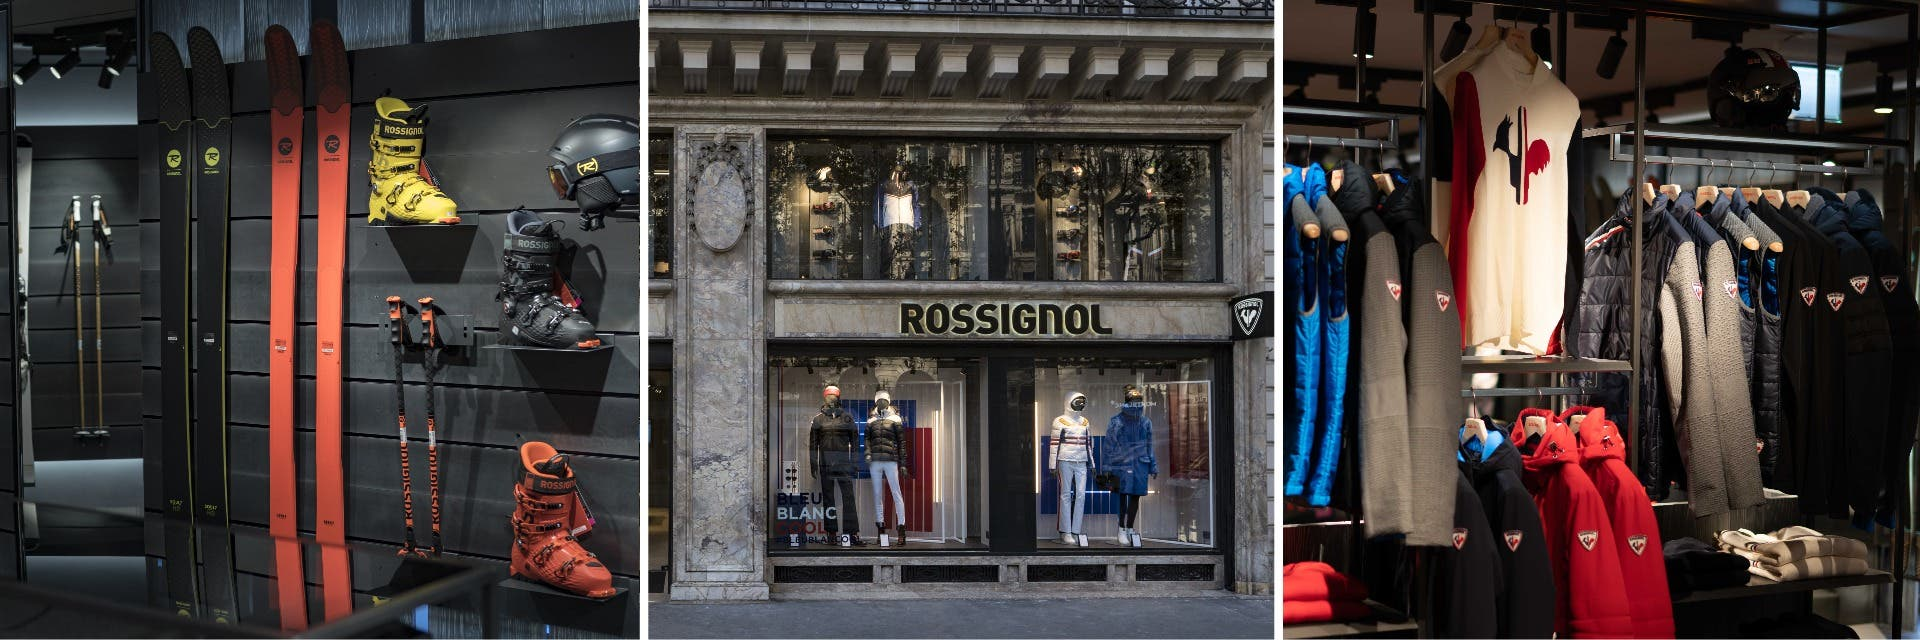 Rossignol Paris